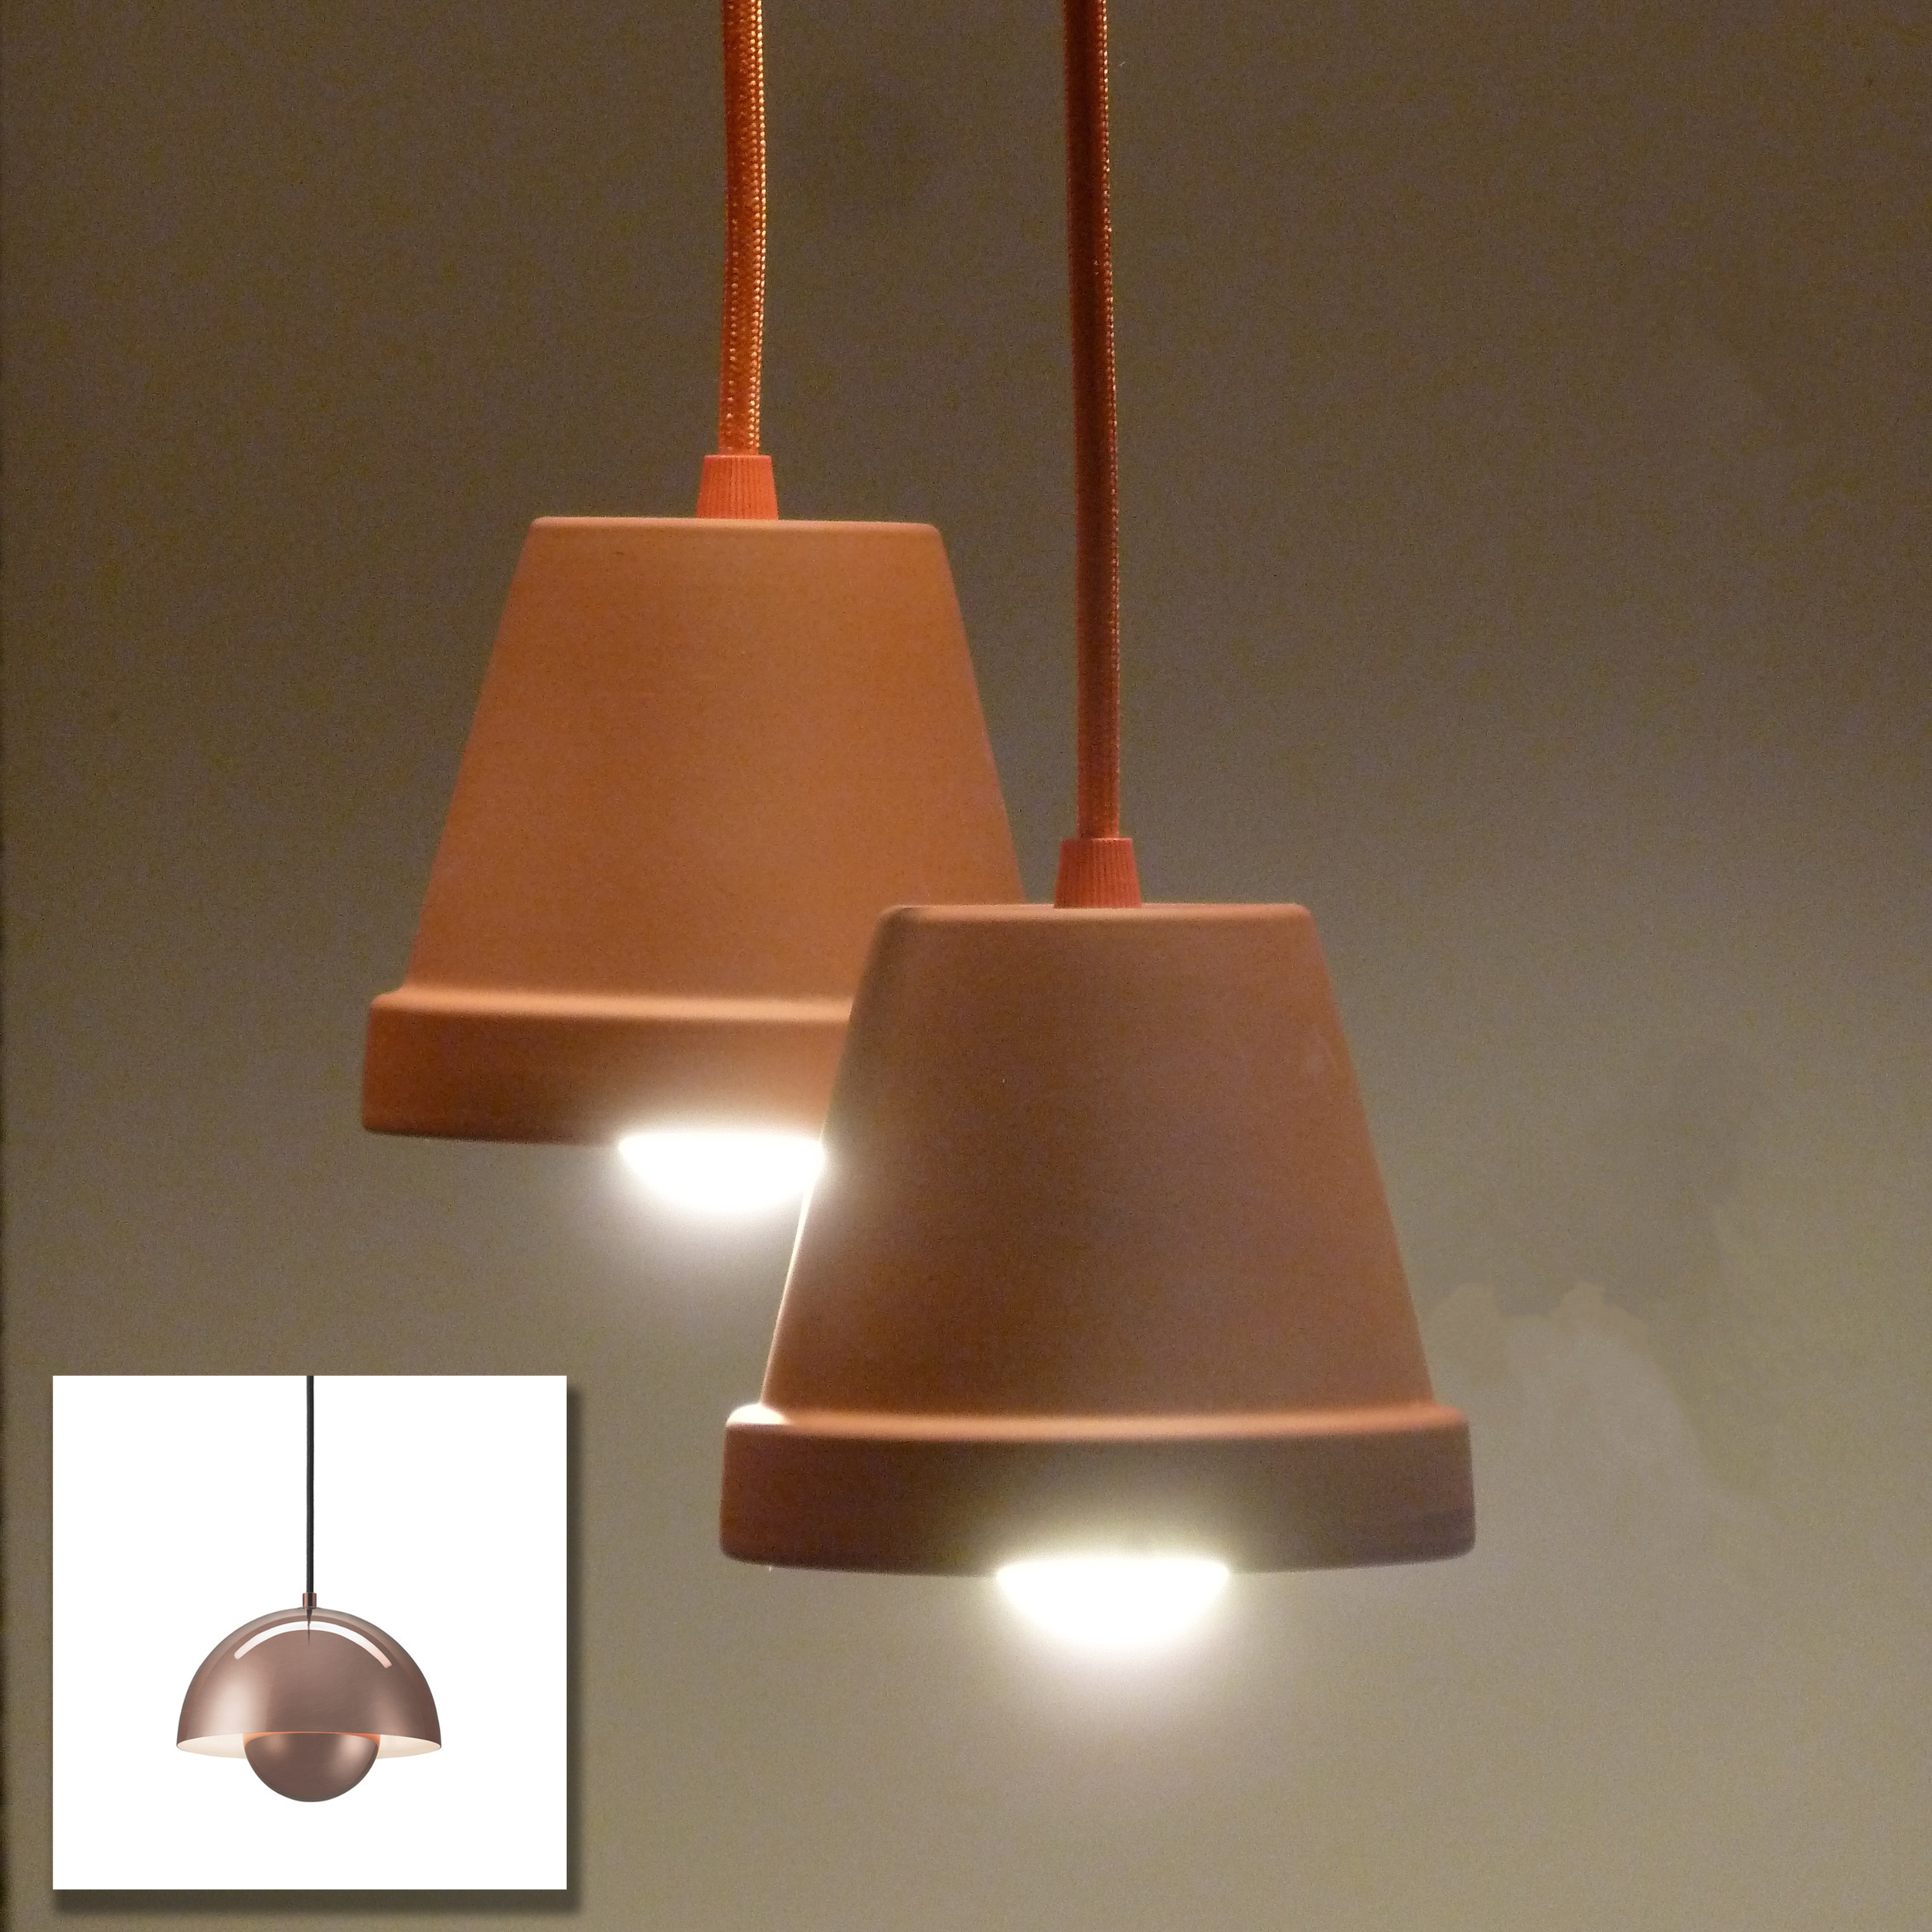 Home made flower pot lamps and the real thing